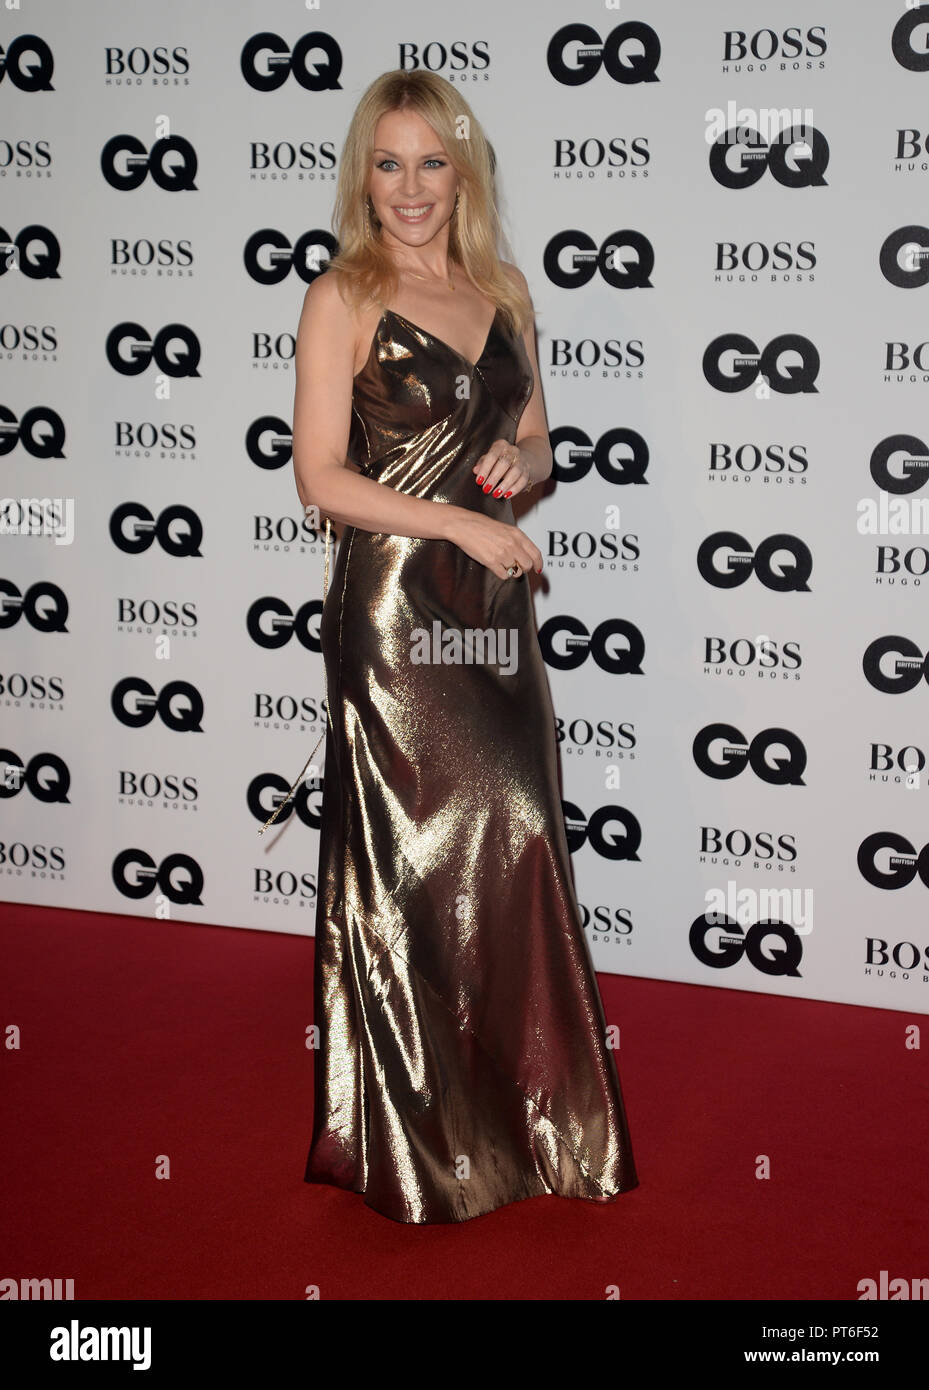 GQ Men Of The Year Awards  Featuring: Kylie Minogue Where: London, United Kingdom When: 05 Sep 2018 Credit: Tony Oudot/WENN - Stock Image